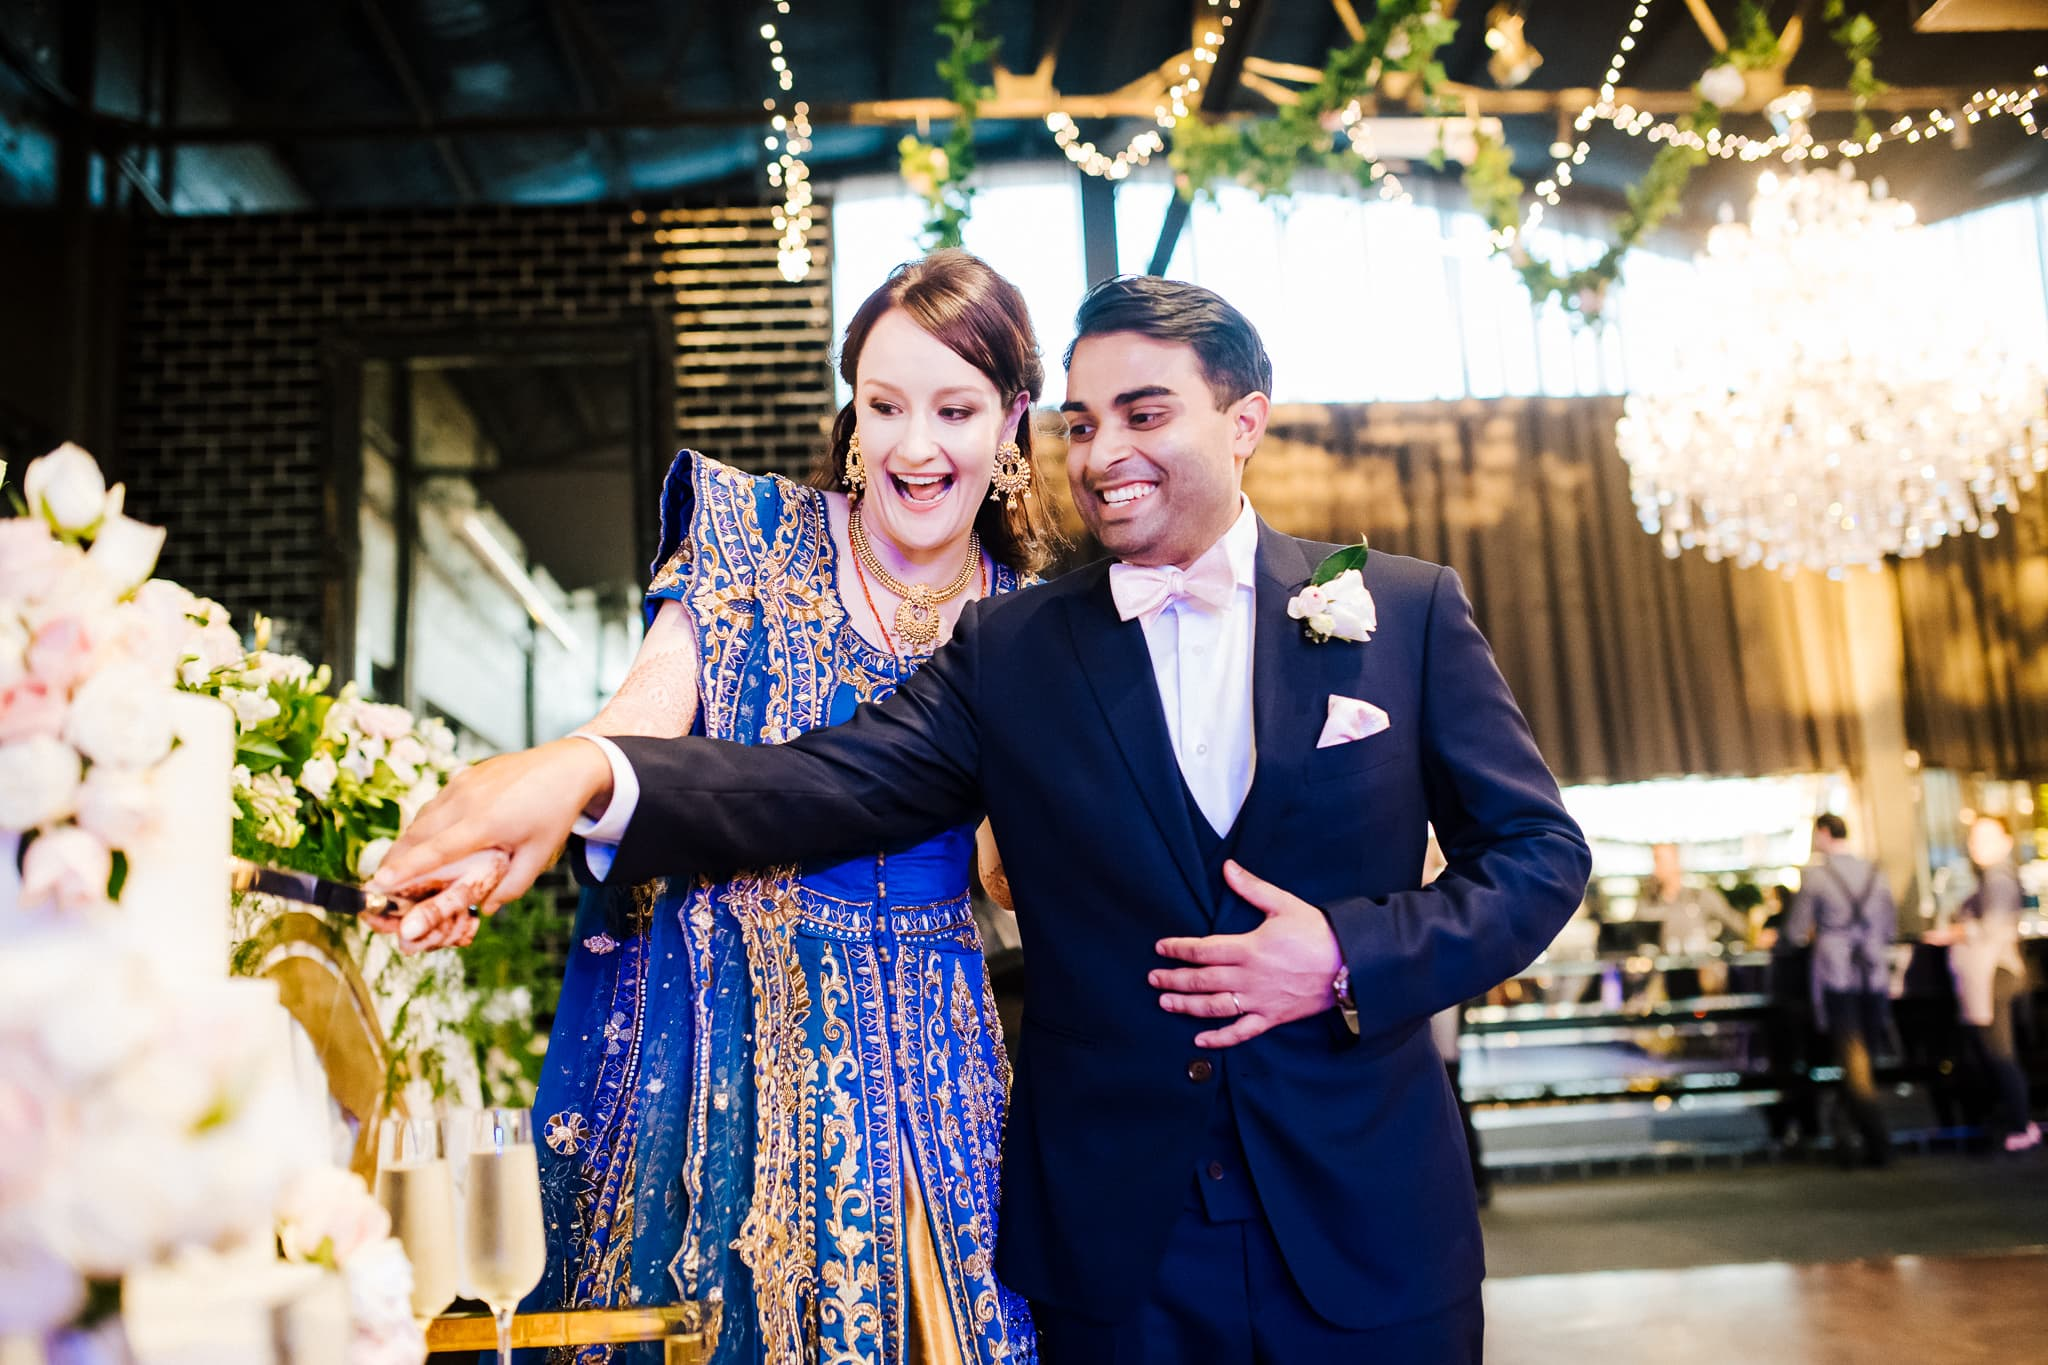 Claire and Rohit's colourful multicultural wedding in Melbourne. Their wedding reception took place at The Park in Melbourne.